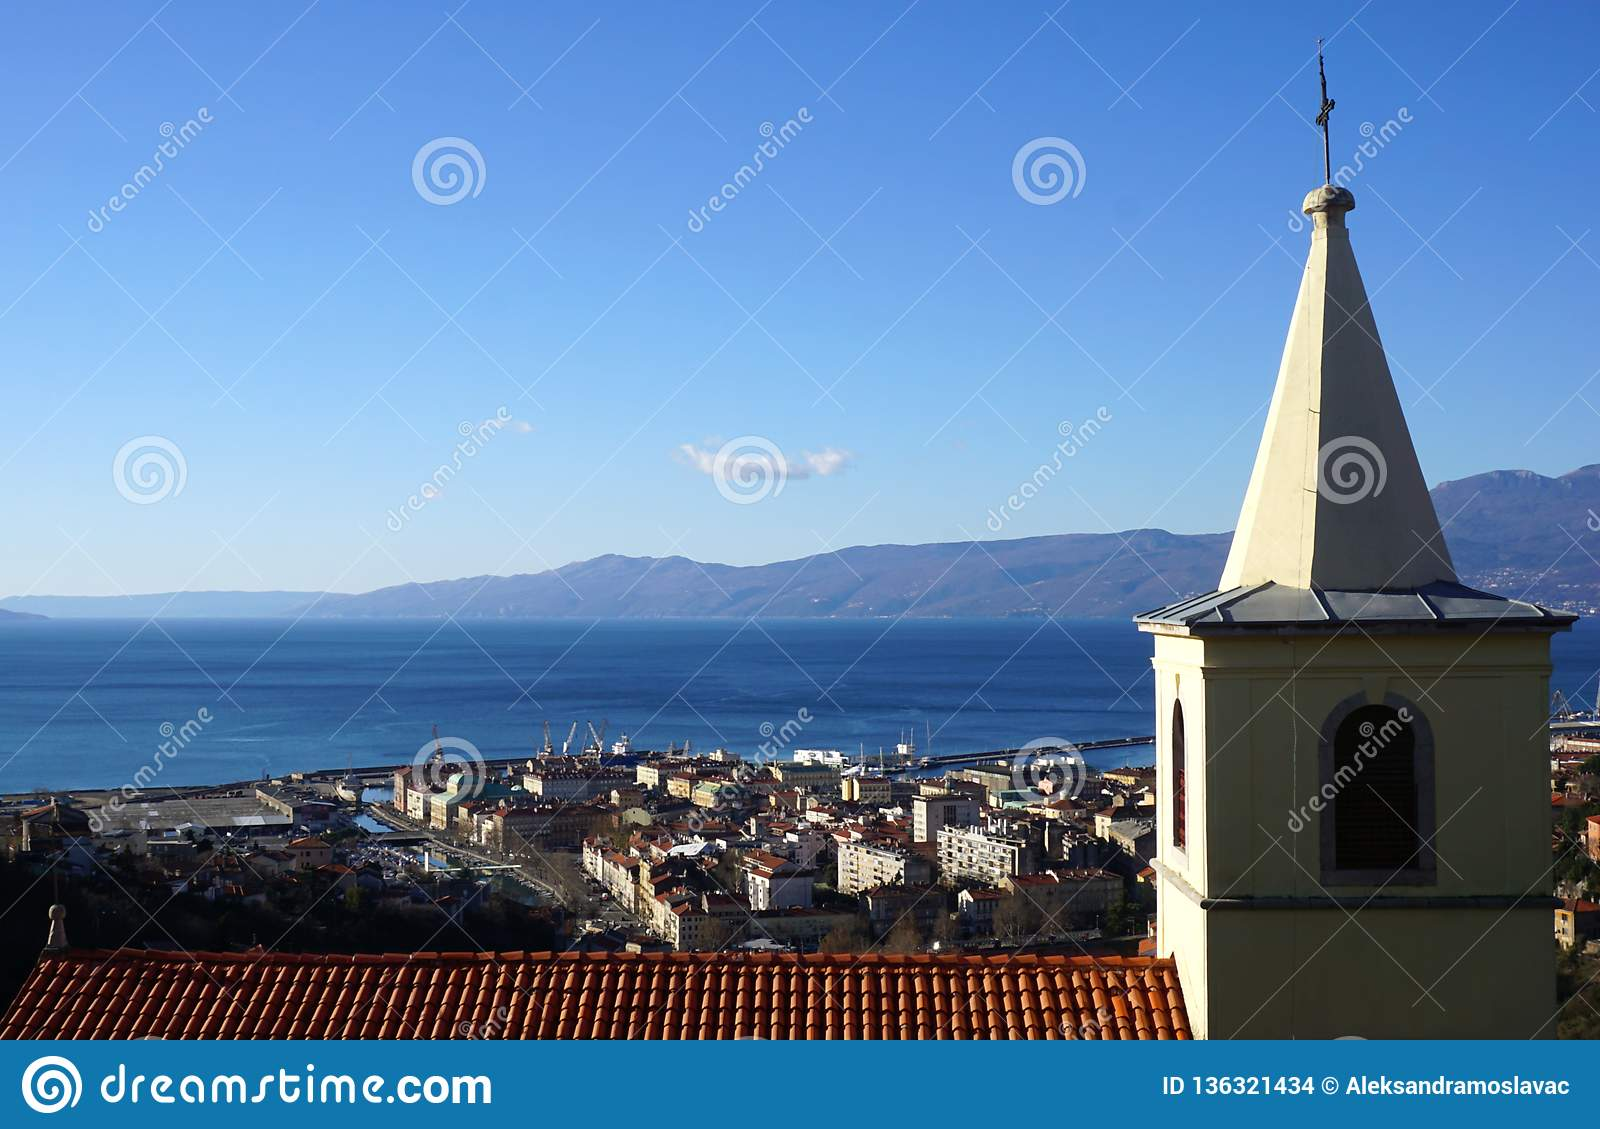 Croatian town Rijeka. Oldest Trsat church – Saint George the Martyr, side view, with aerial view to town and Kvarner region